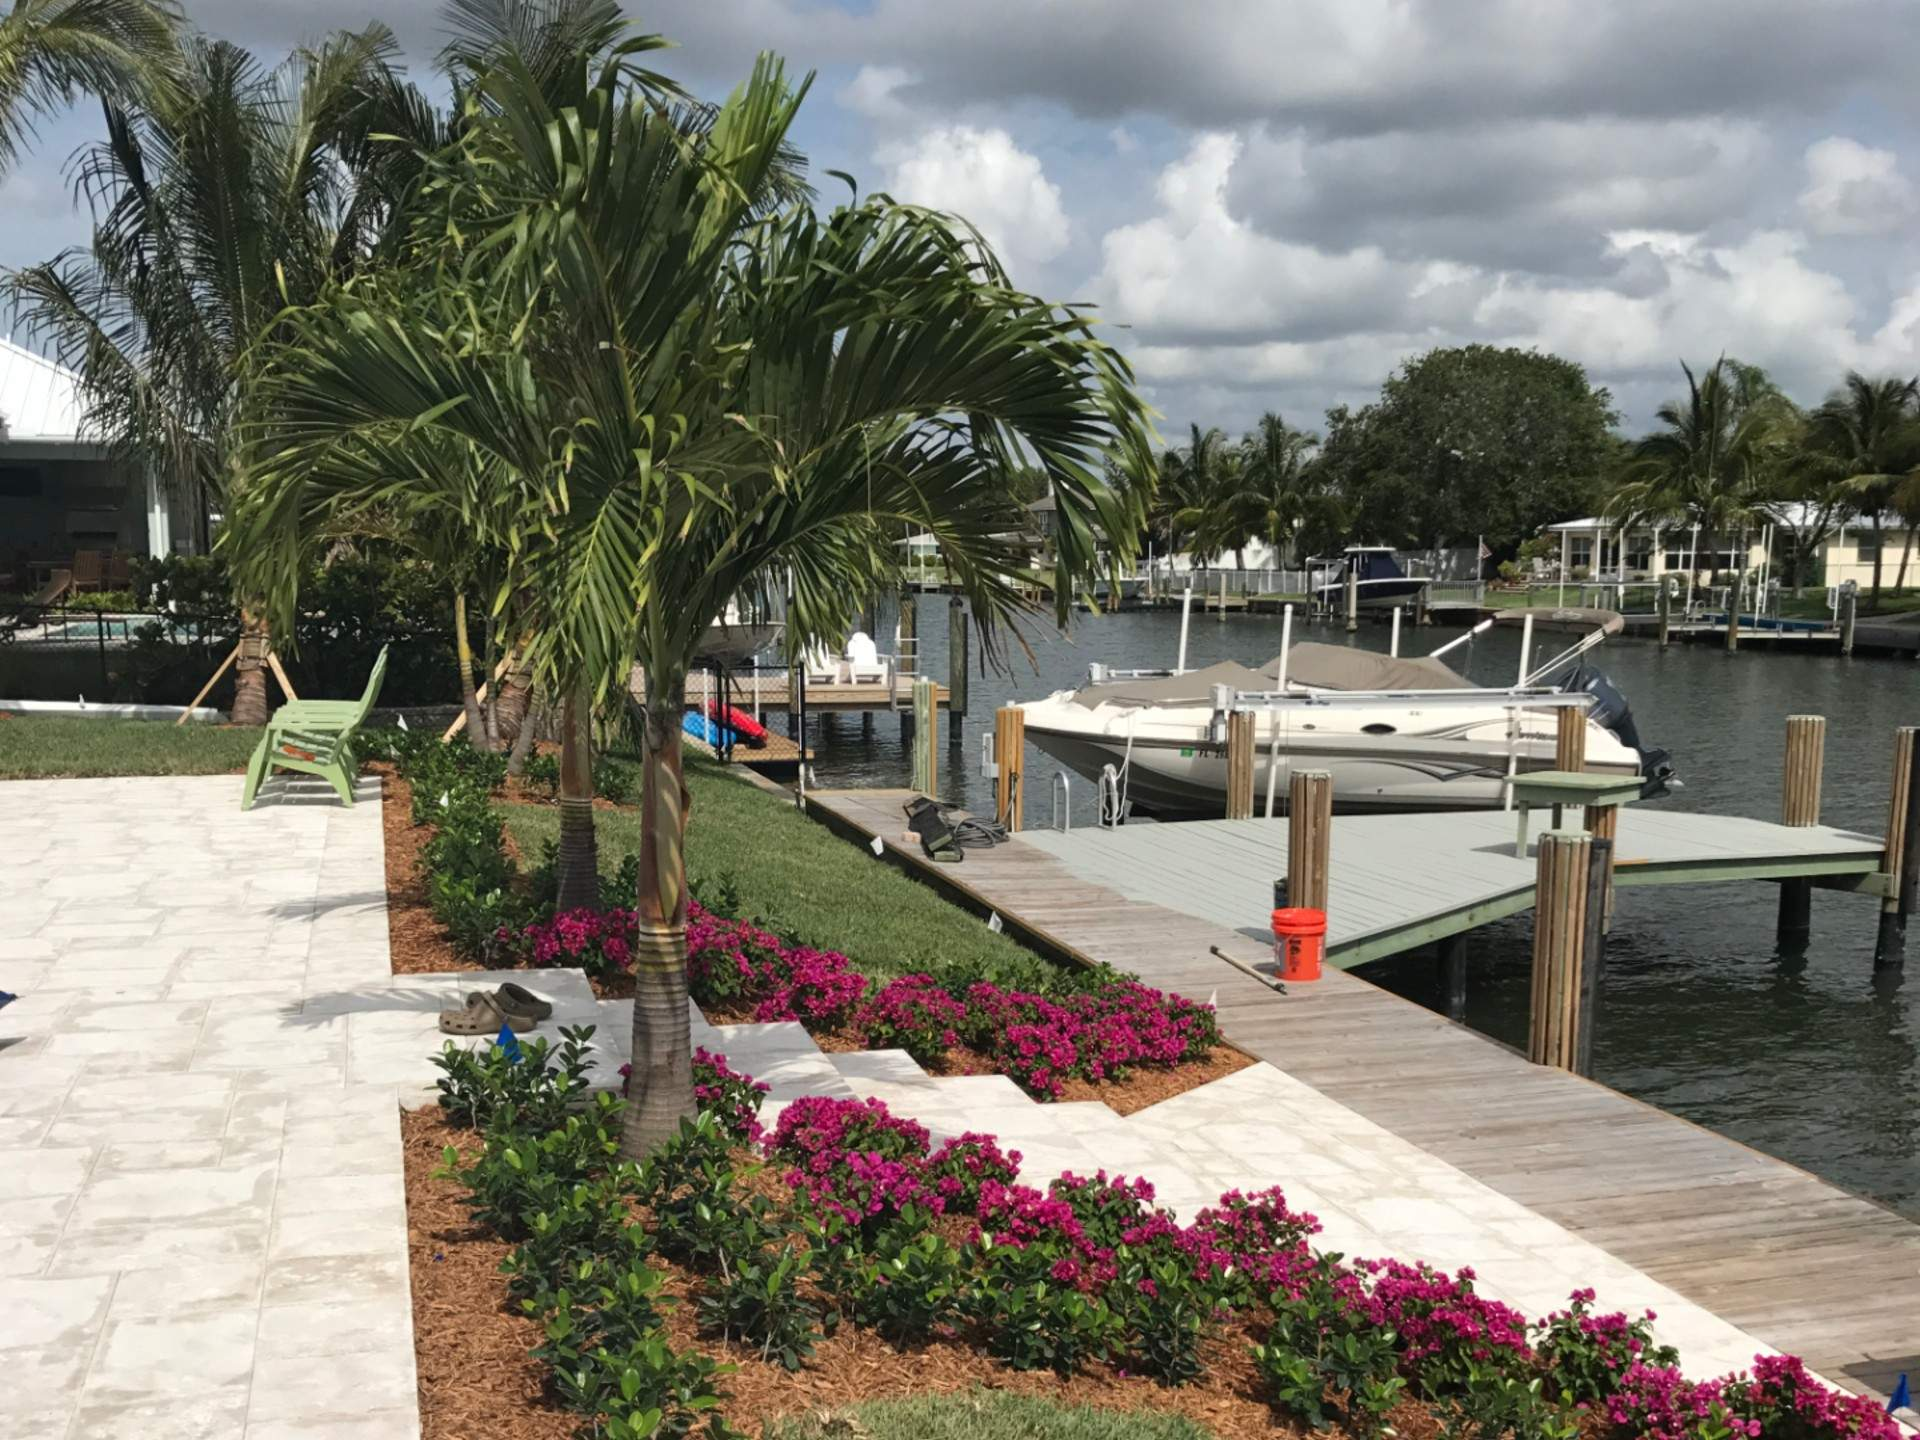 Palm trees and flowers in front of a dock with a boat